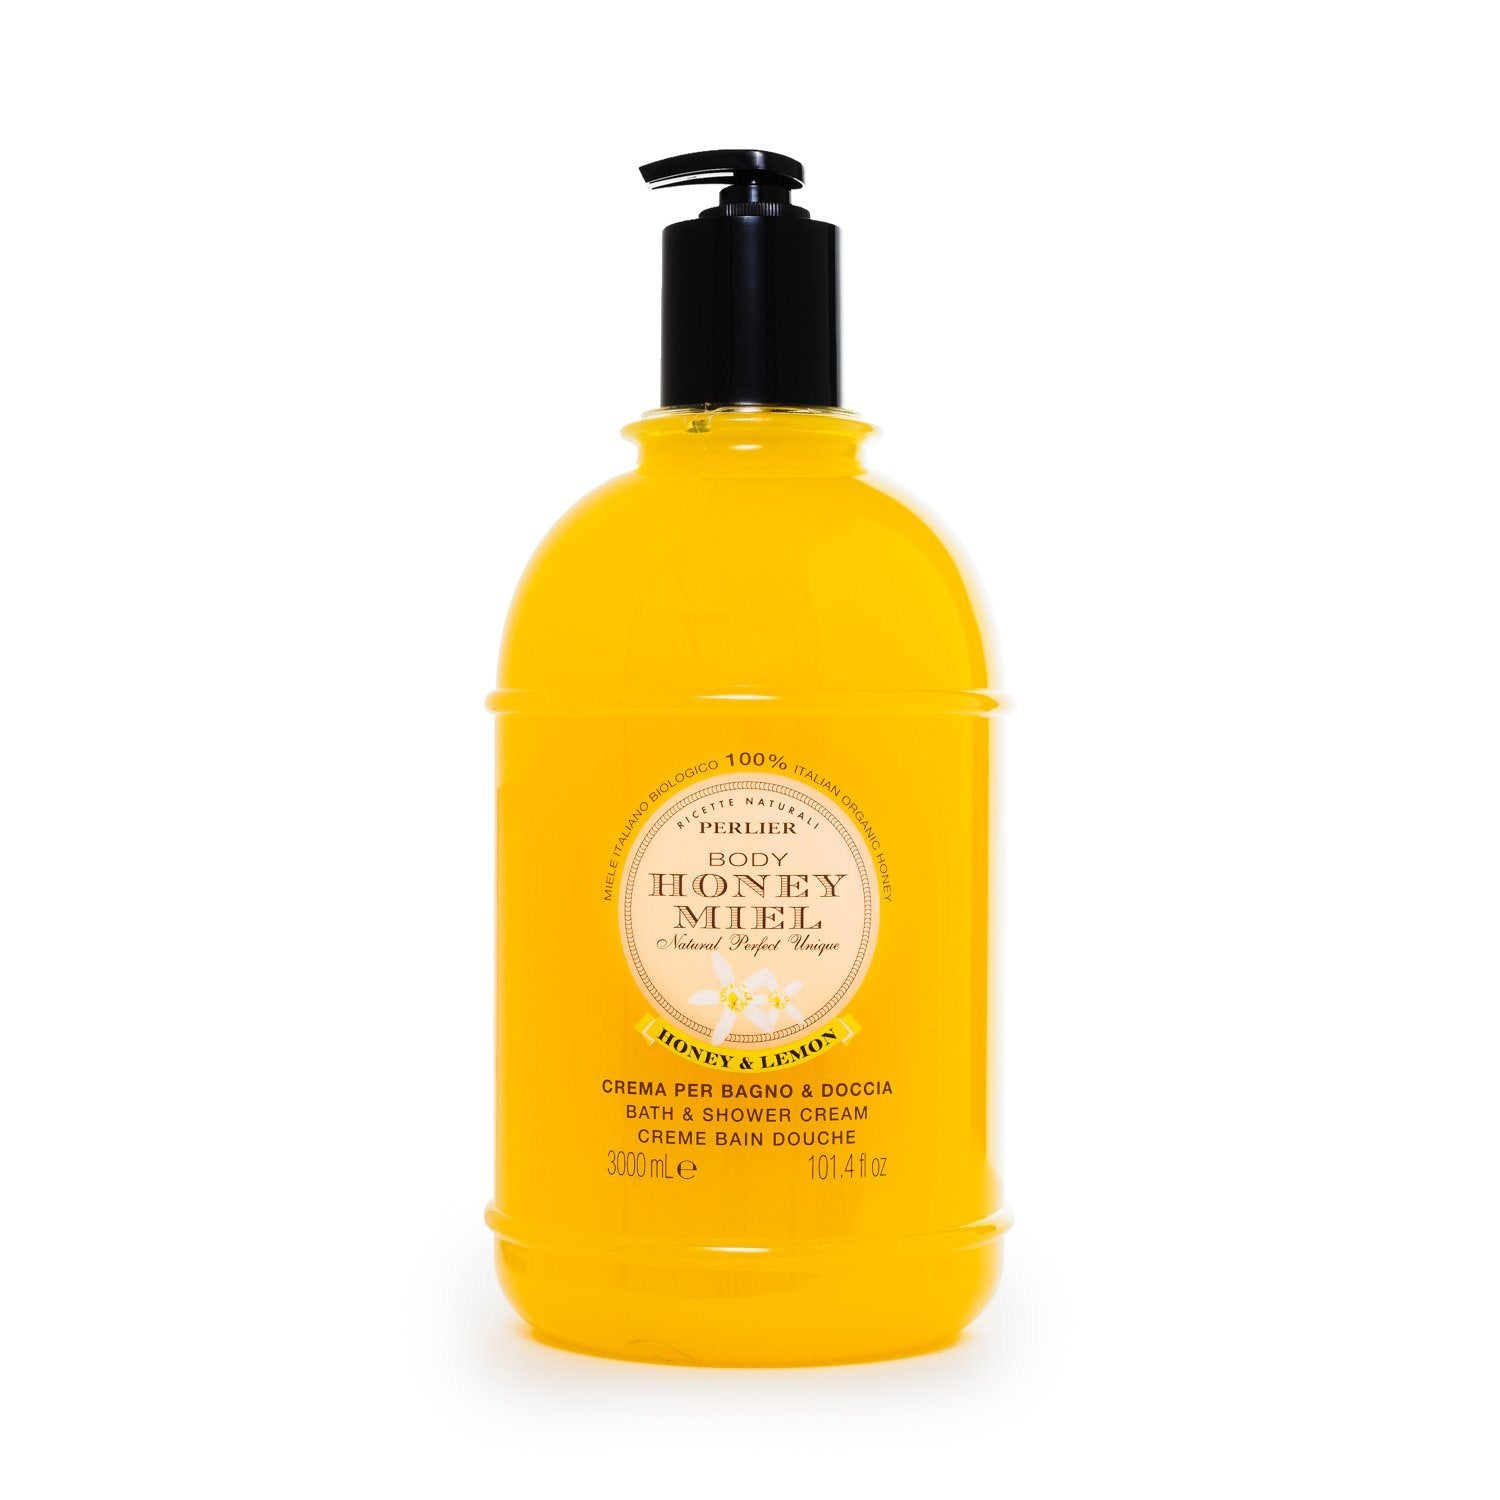 Honey & Lemon Bath & Shower Cream 101.4 fl oz